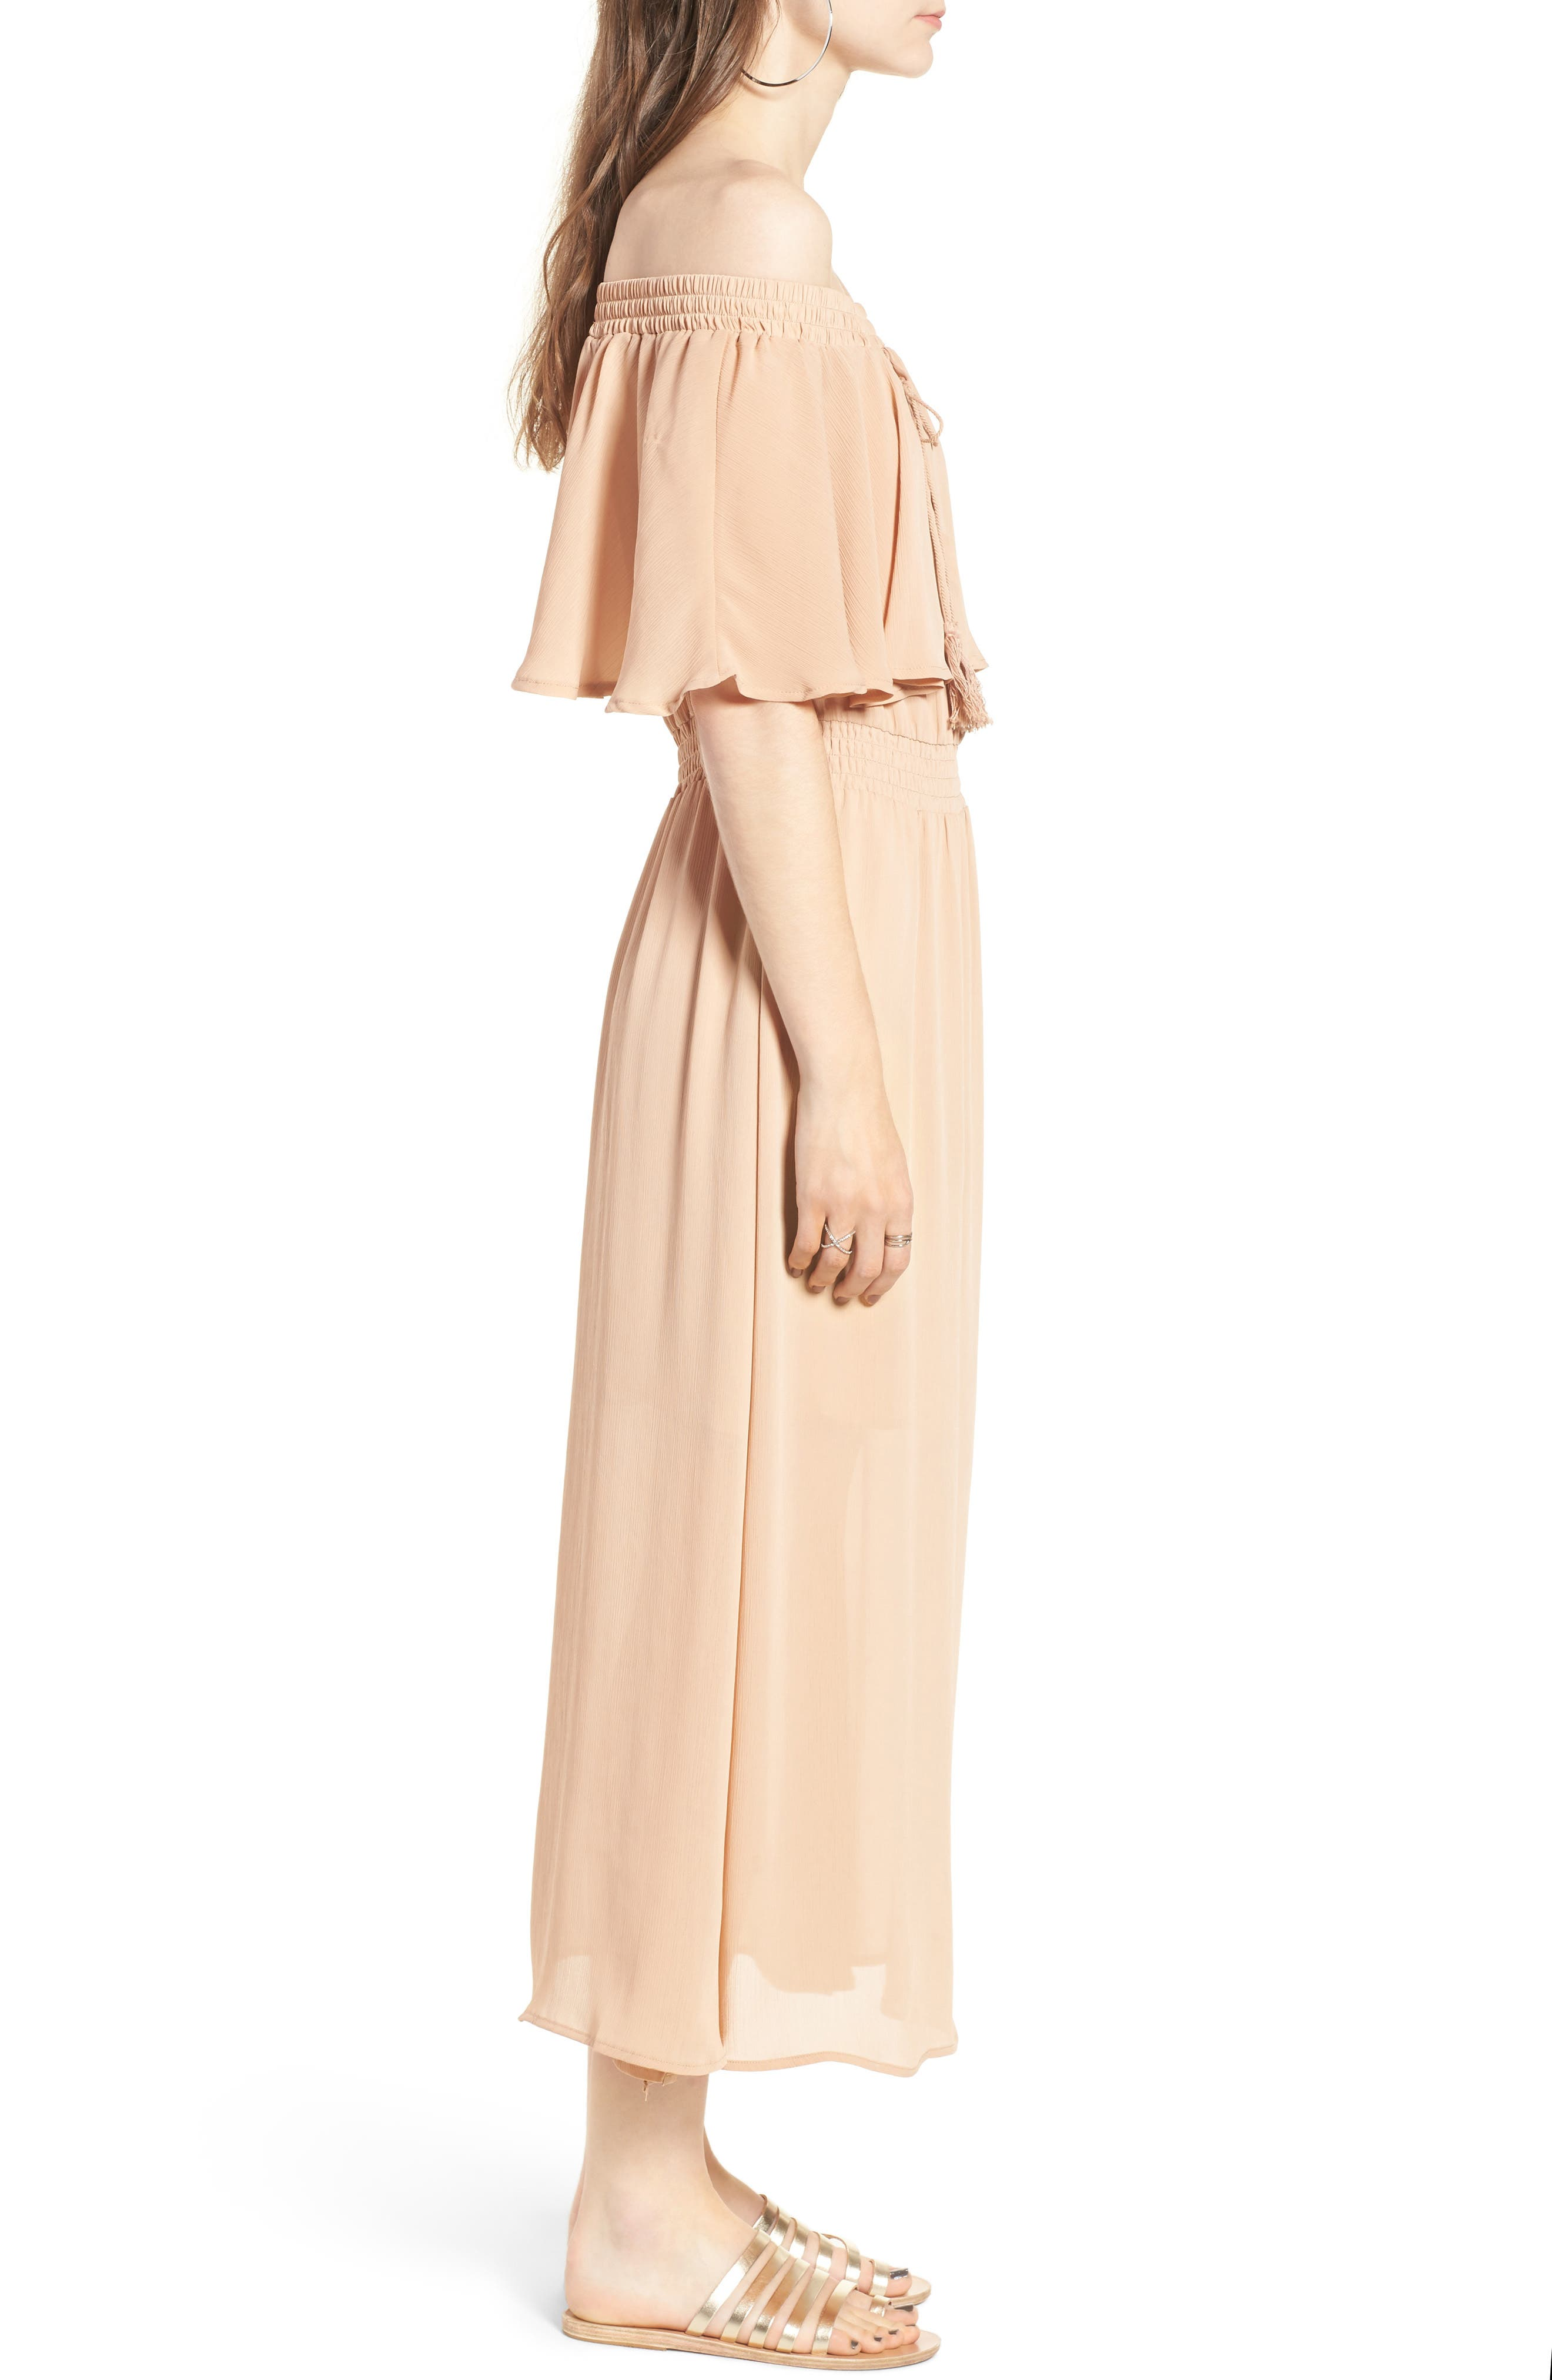 Touch the Sun Off the Shoulder Dress,                             Alternate thumbnail 6, color,